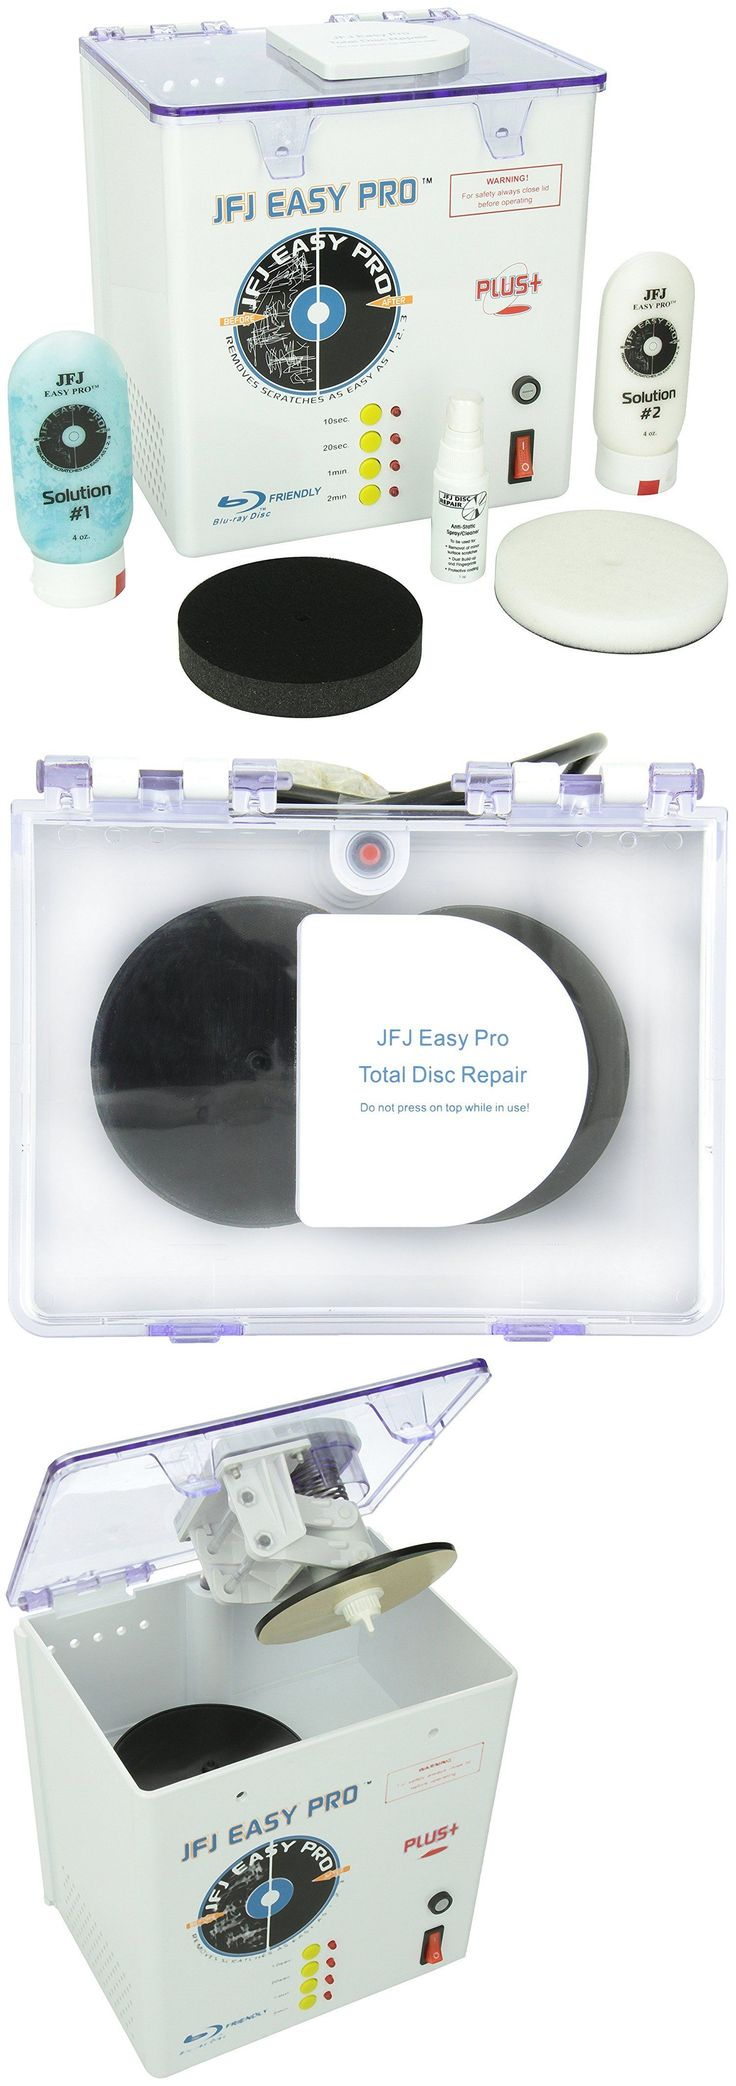 Disc Repair and Disc Cleaning: Cd Repair Machine Kit Video Game Disc Dvd Scratch Skip Cleaner Ps2 Ps3 Ps4 Xbox BUY IT NOW ONLY: $154.97